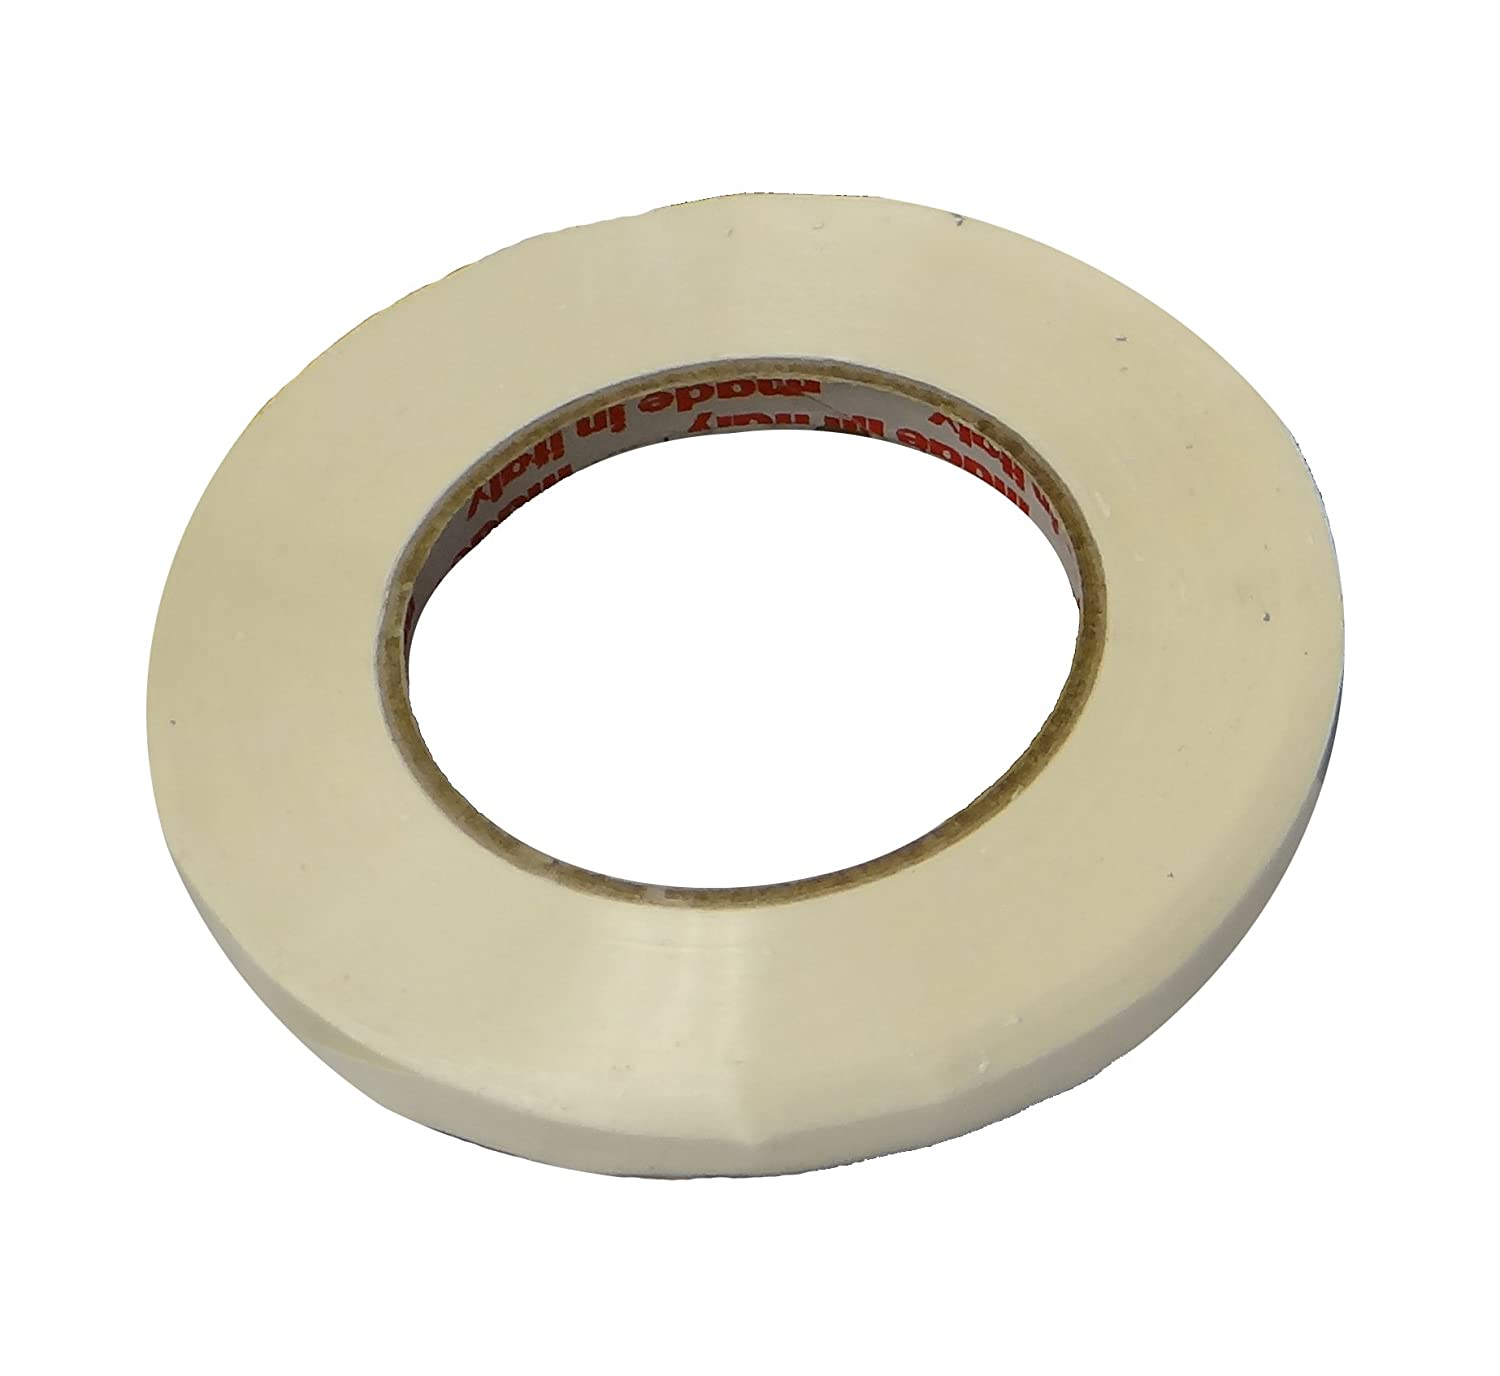 Plastic bag tape sealer - Amazon Com White Produce Poly Bag Sealer Tape 3 8 Inch X 180 Yards 6 Rolls Packing Tape Office Products